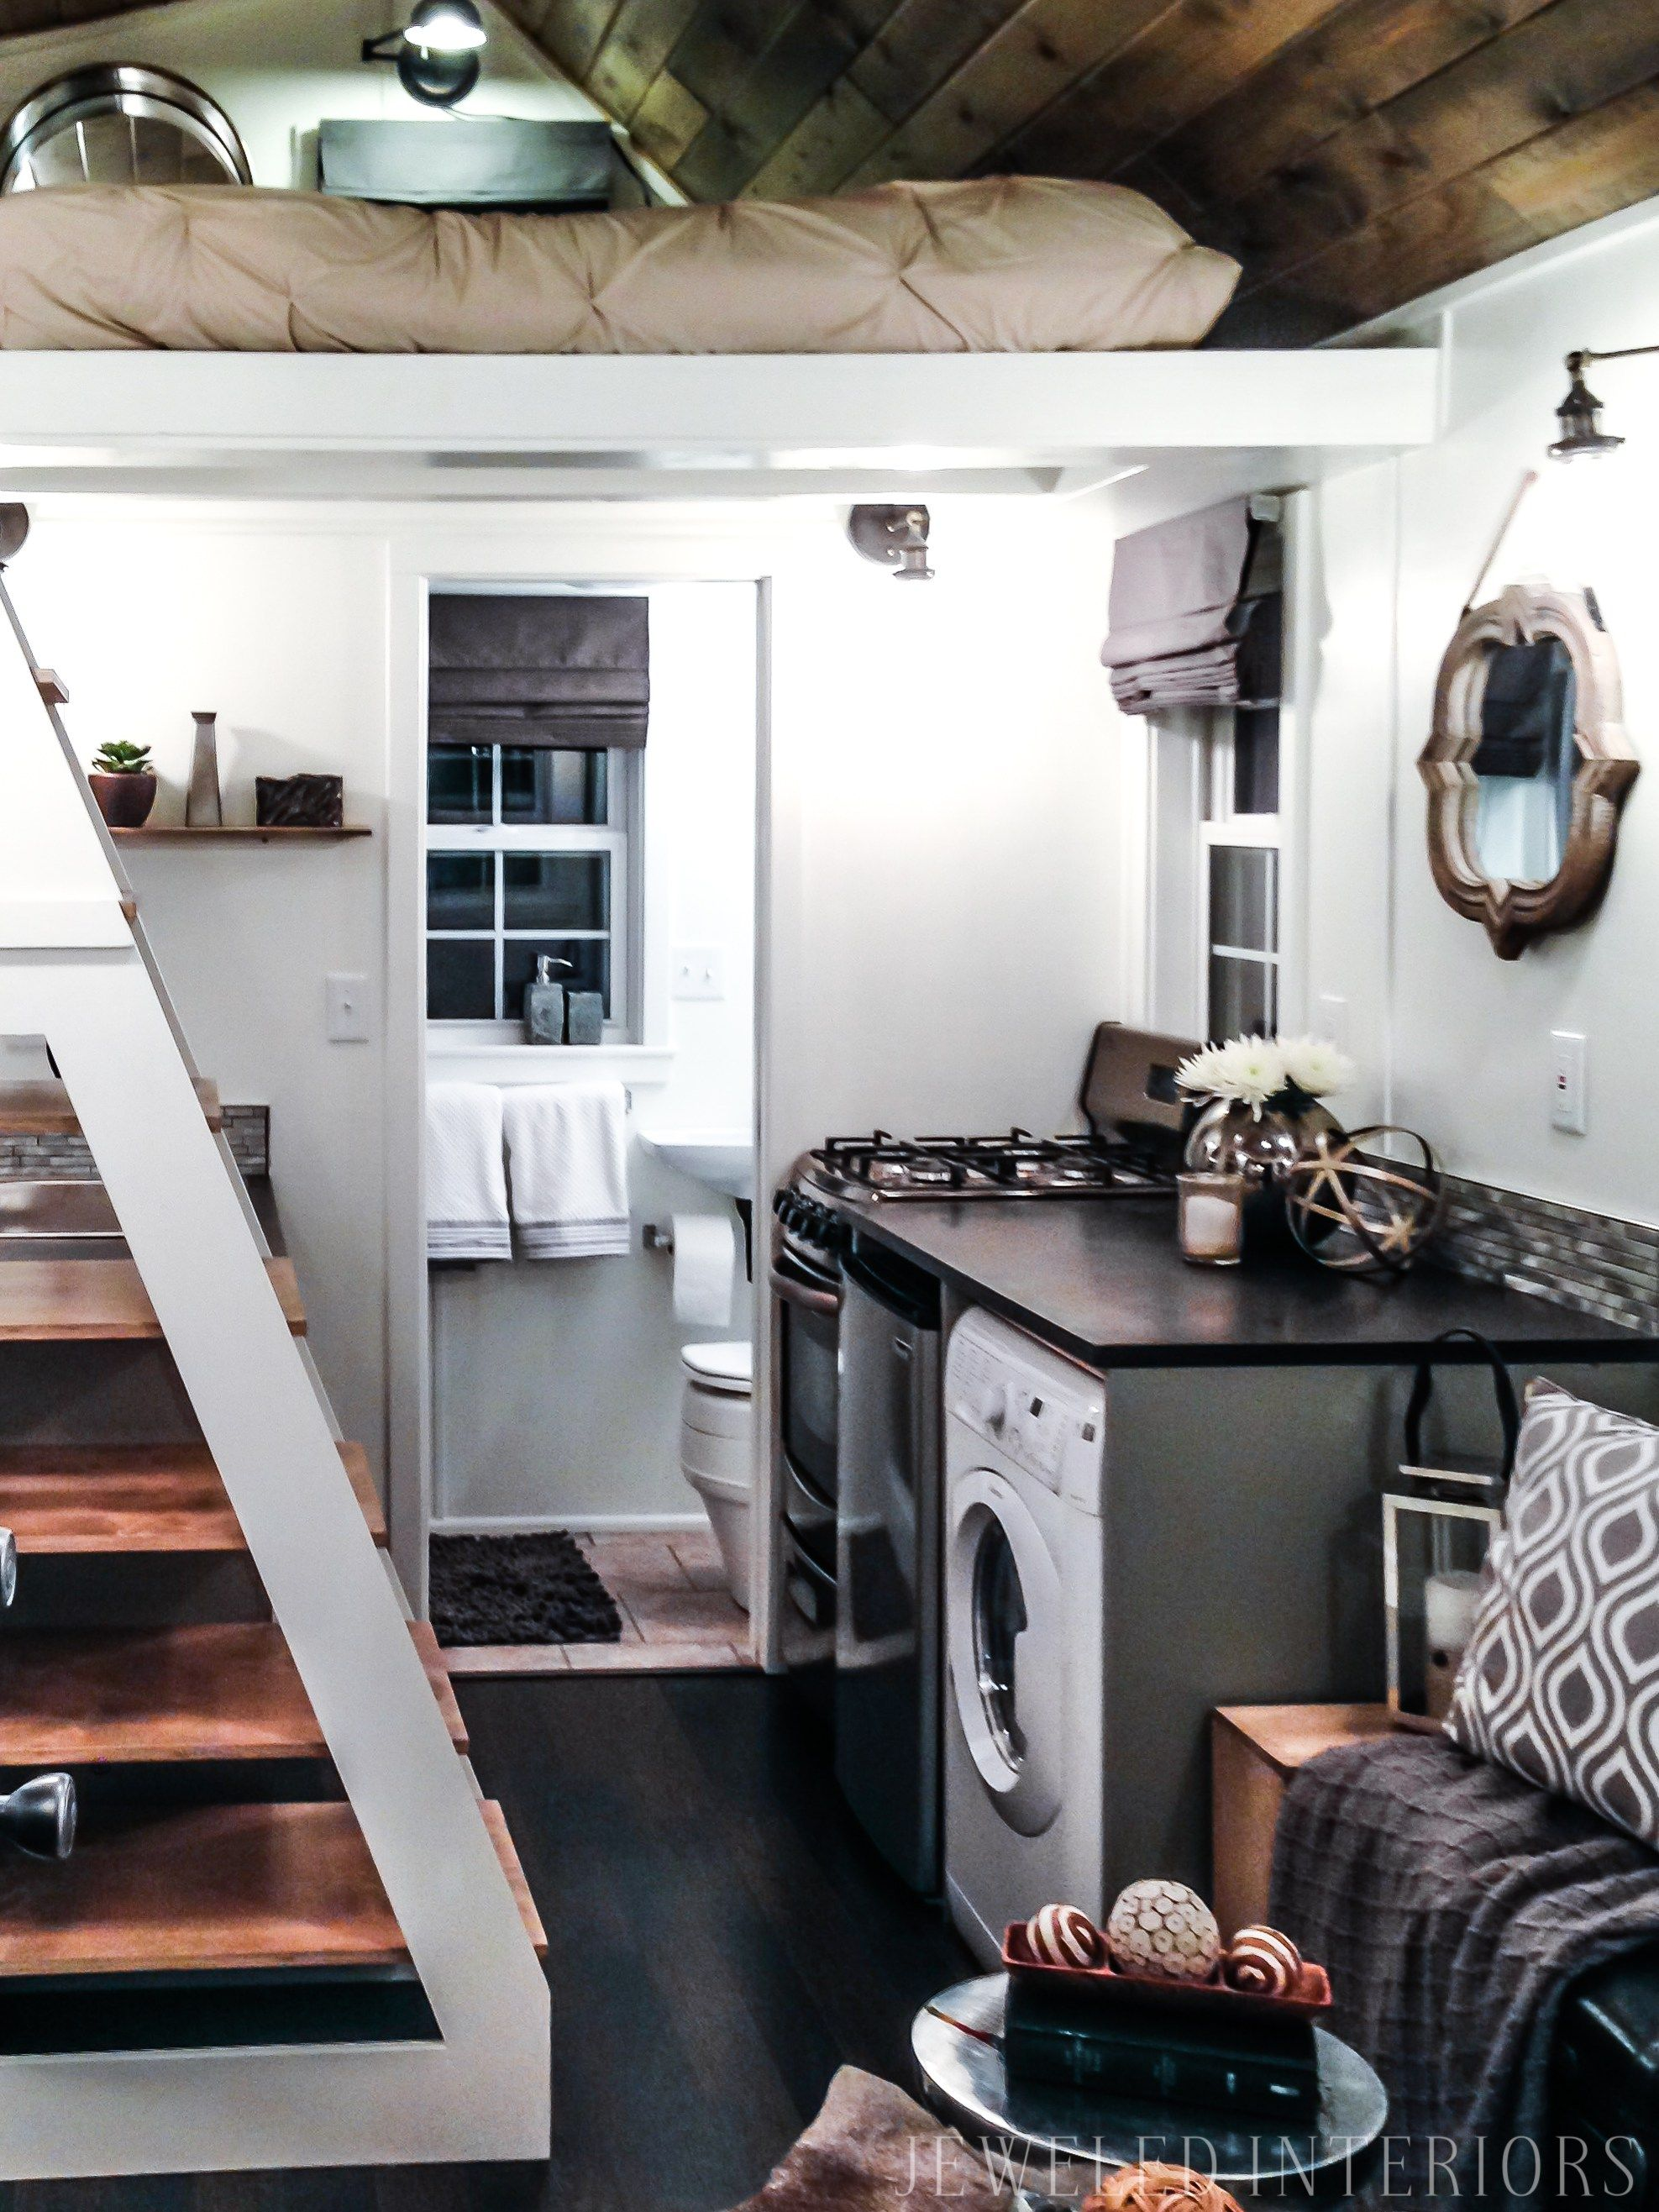 hight resolution of tiny home tiny house jeweled interiors porch kitchen living room bedroom kitchen wheels loft decorate design beautiful stunning rustic chic